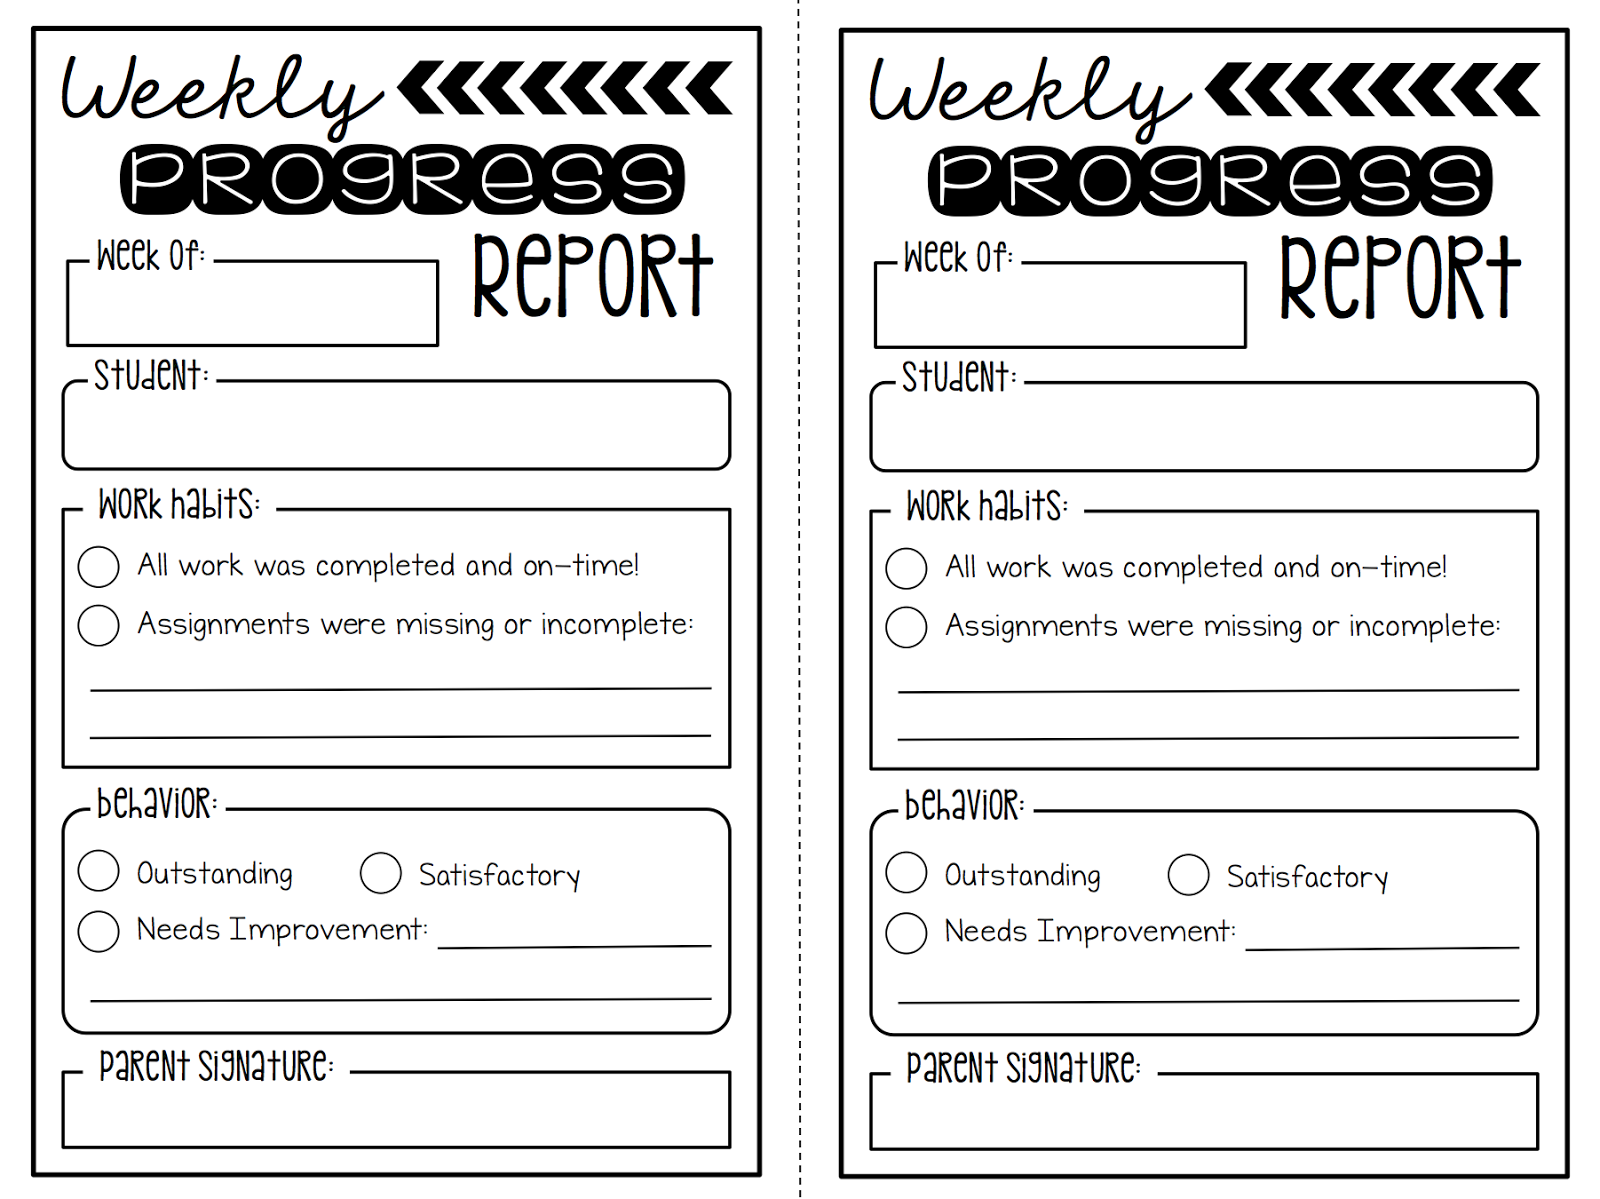 Summertime revamp 2 weekly progress reports freebie for Summer school progress report template